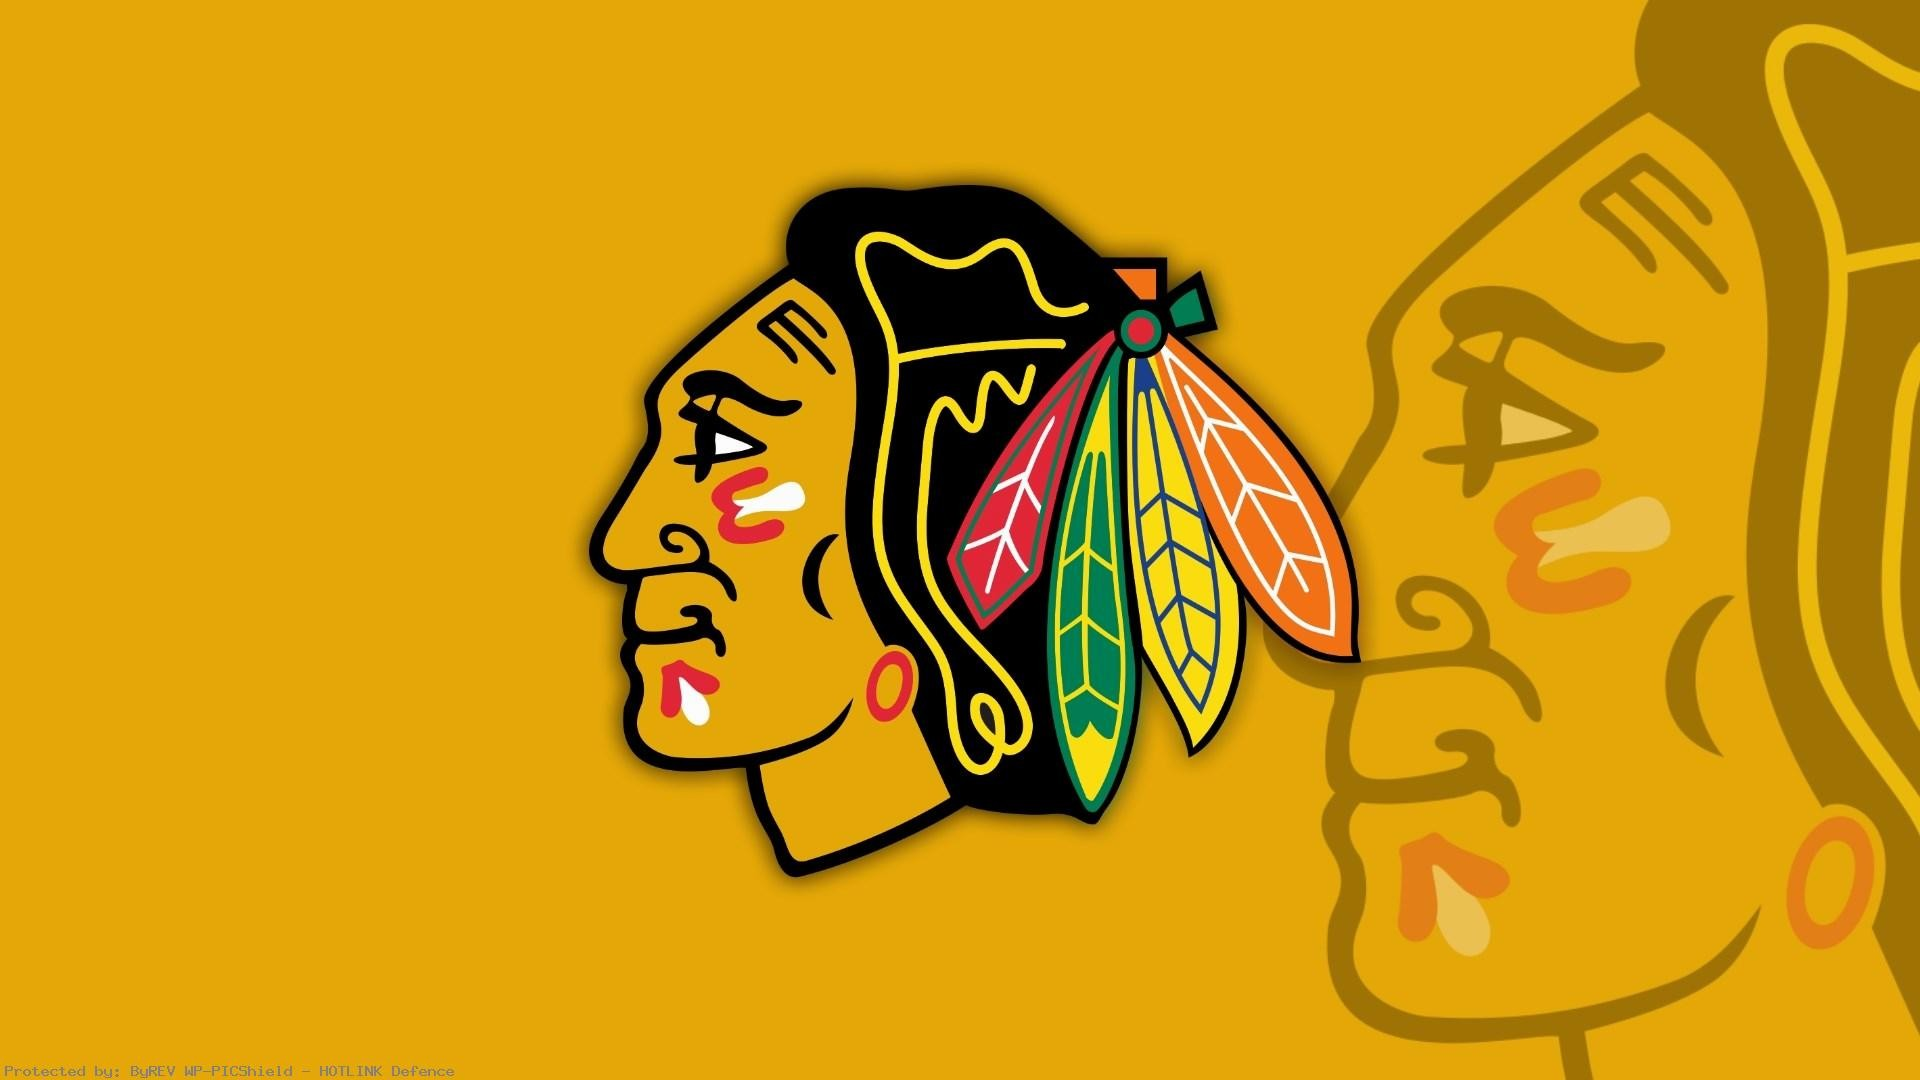 Chicago blackhawks wallpaper for iphone 66 images 2048x1363 chicago blackhawks pack 1080p hd wallpaper wp400266 voltagebd Images